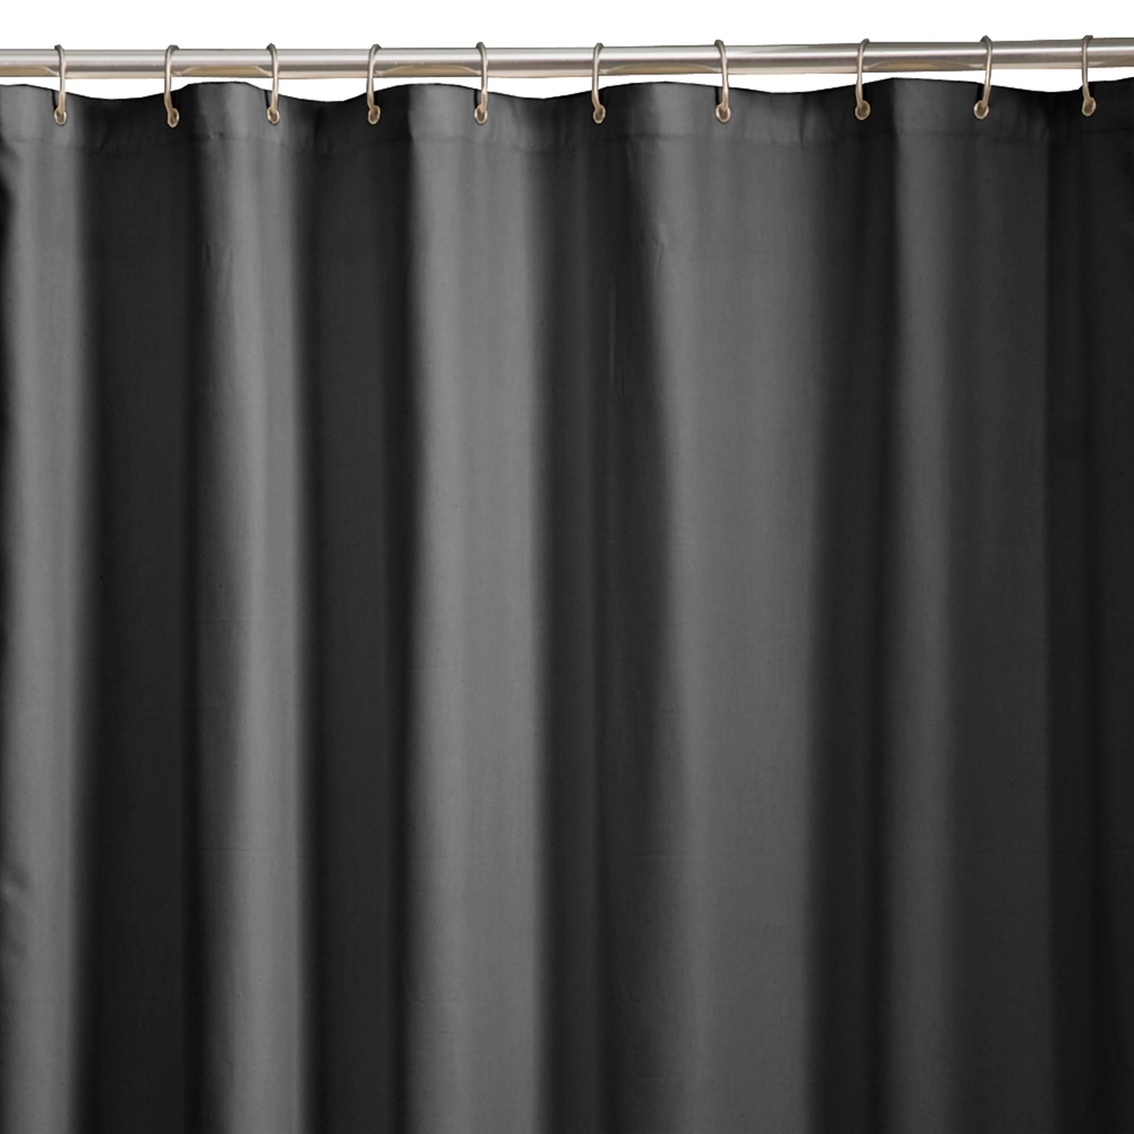 Maytex Polyester Fabric Shower Curtain Liner